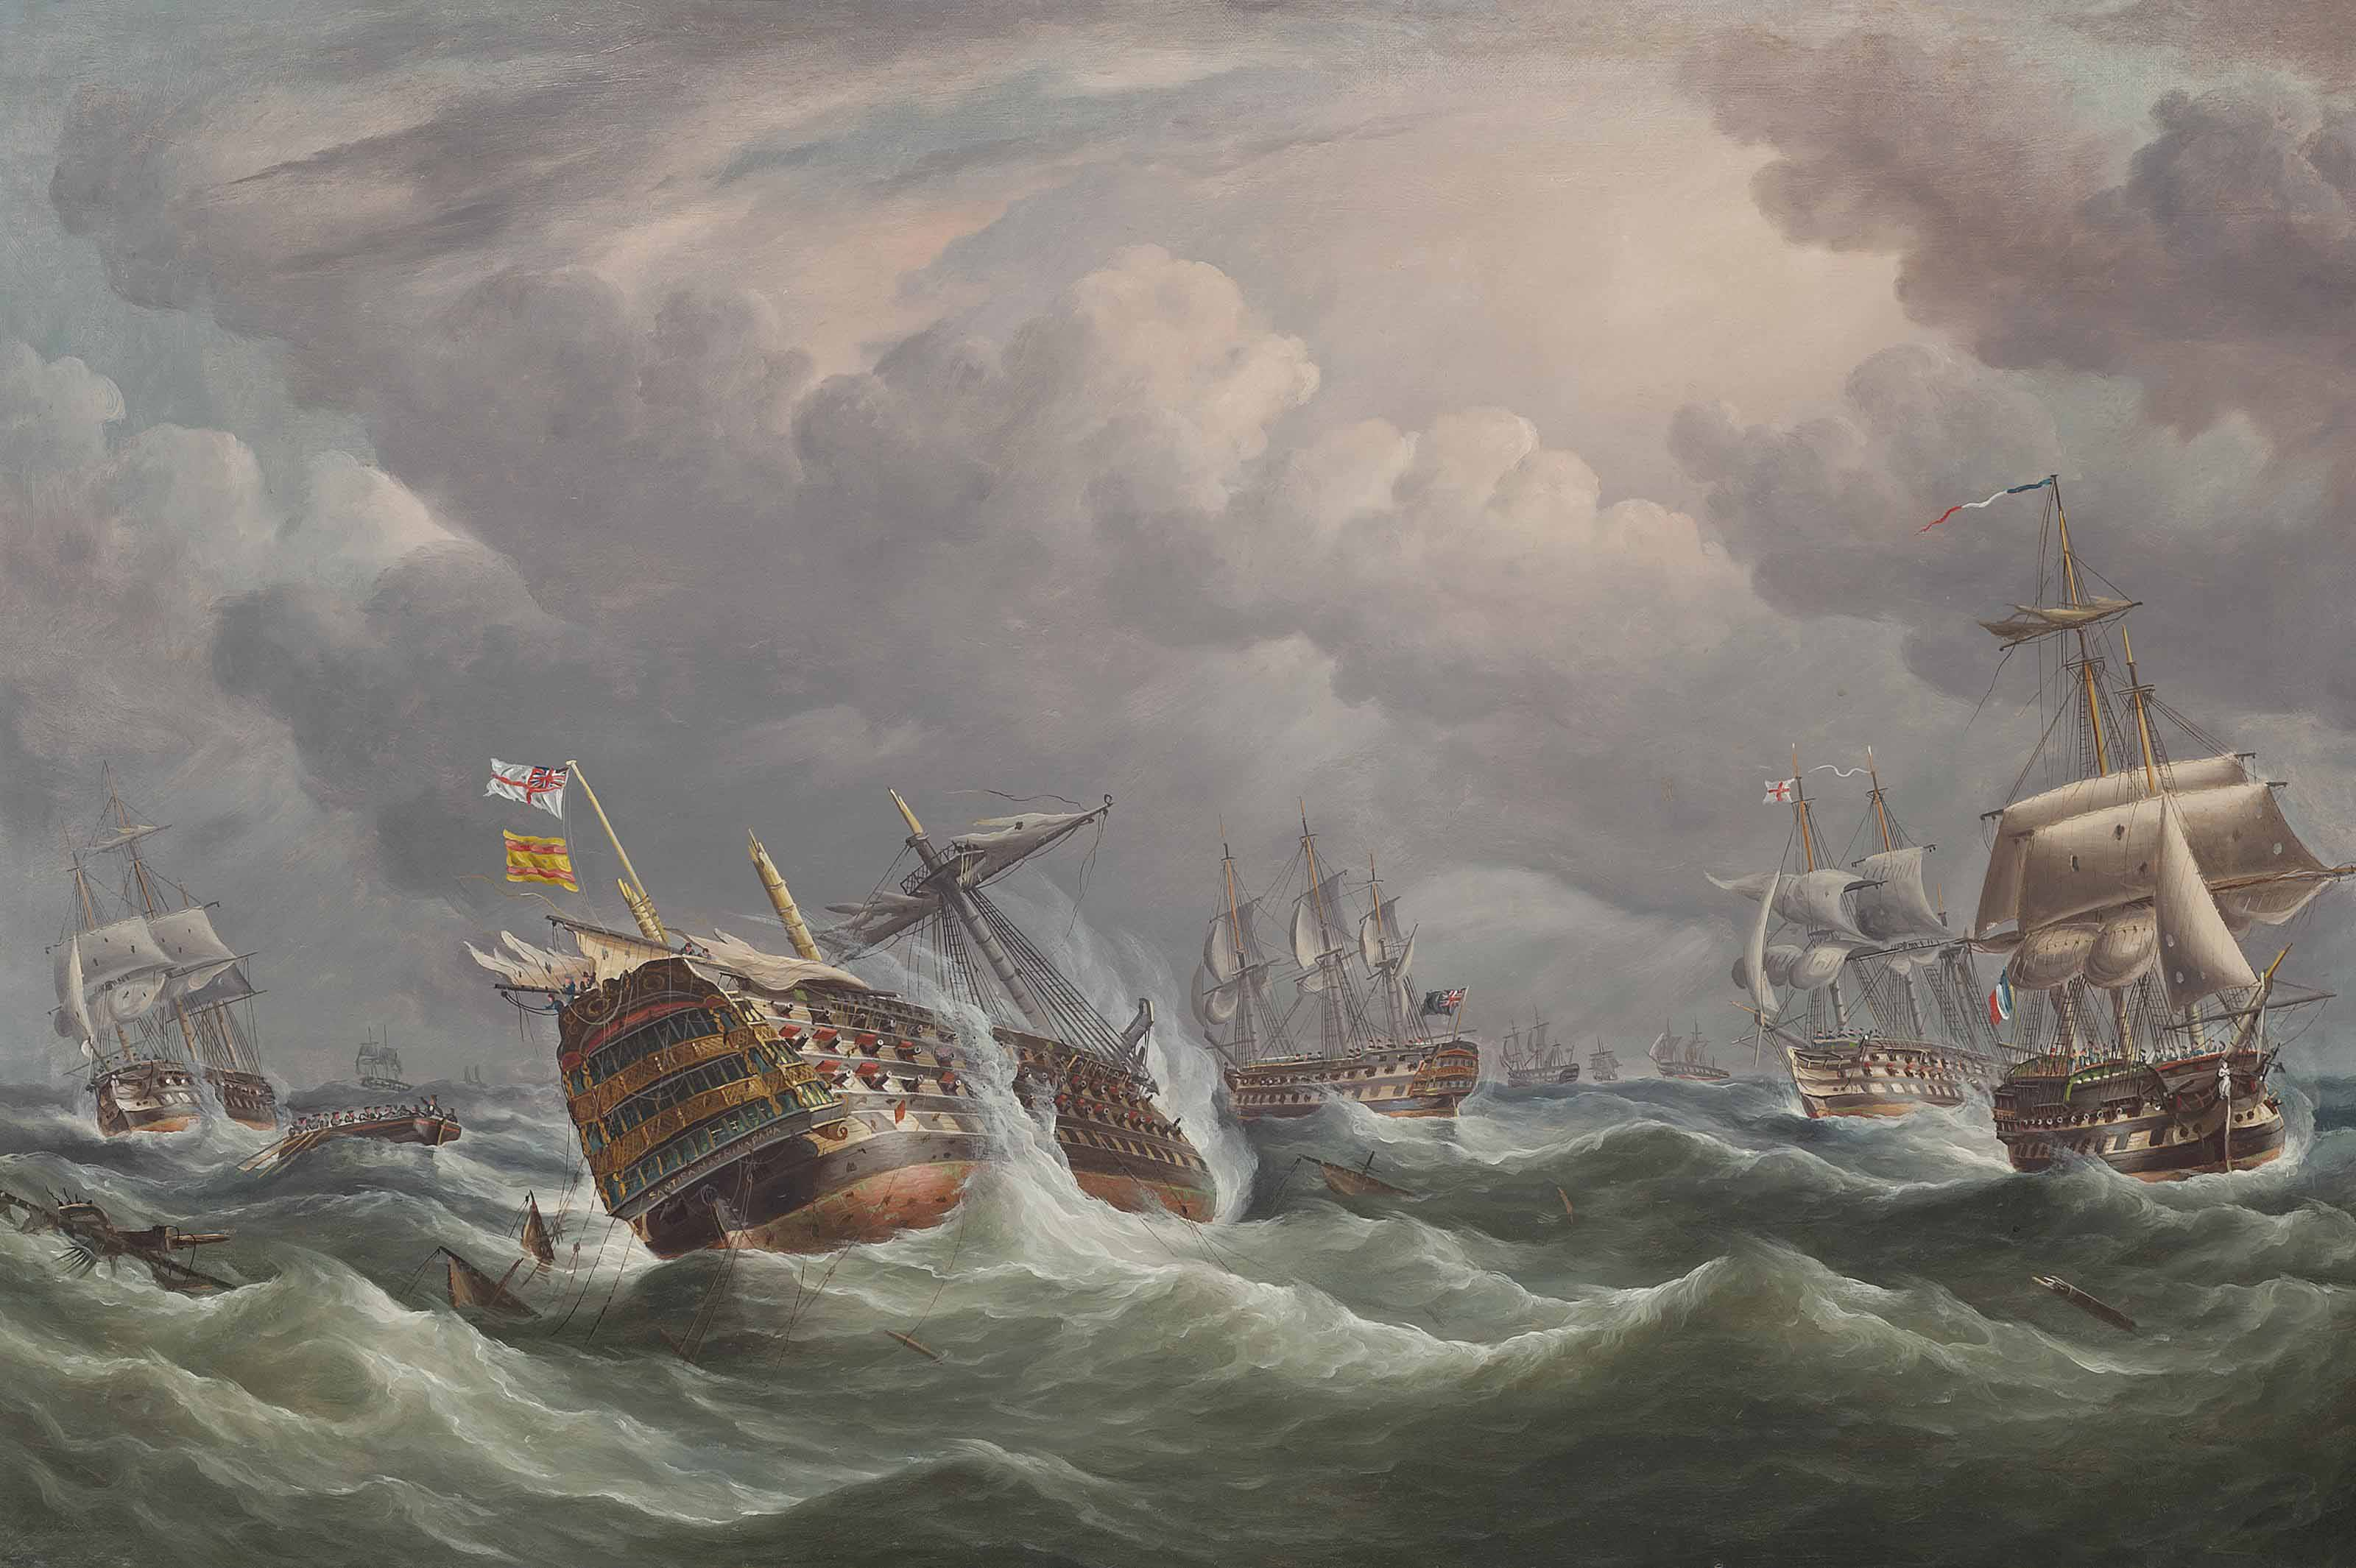 The aftermath of Trafalgar: The Spanish flagship Santísima Trinidad wallowing in the swell under prize colours